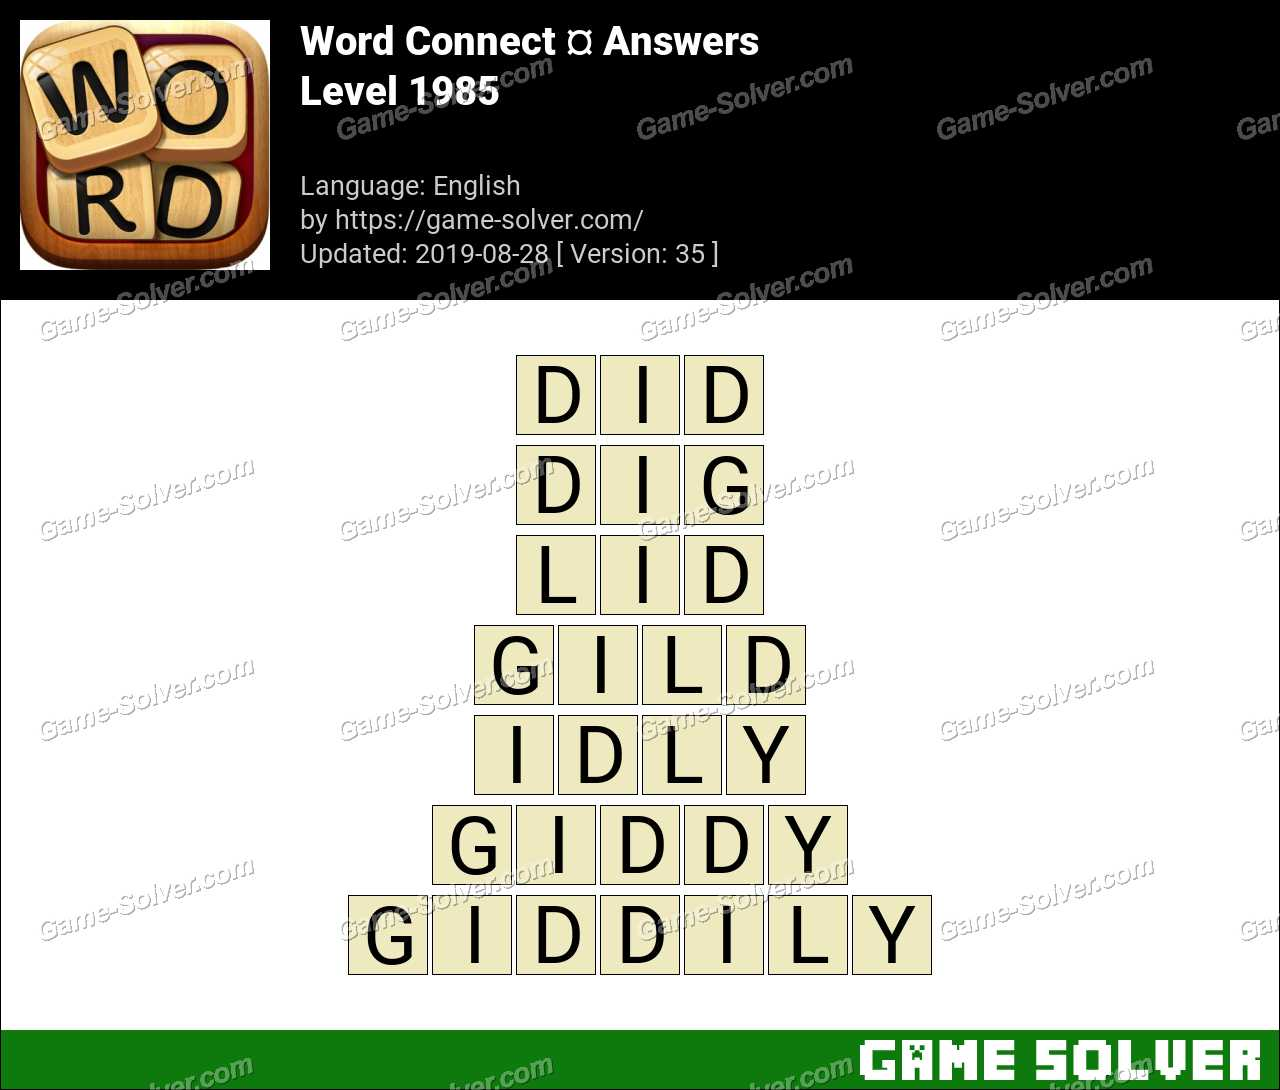 Word Connect Level 1985 Answers